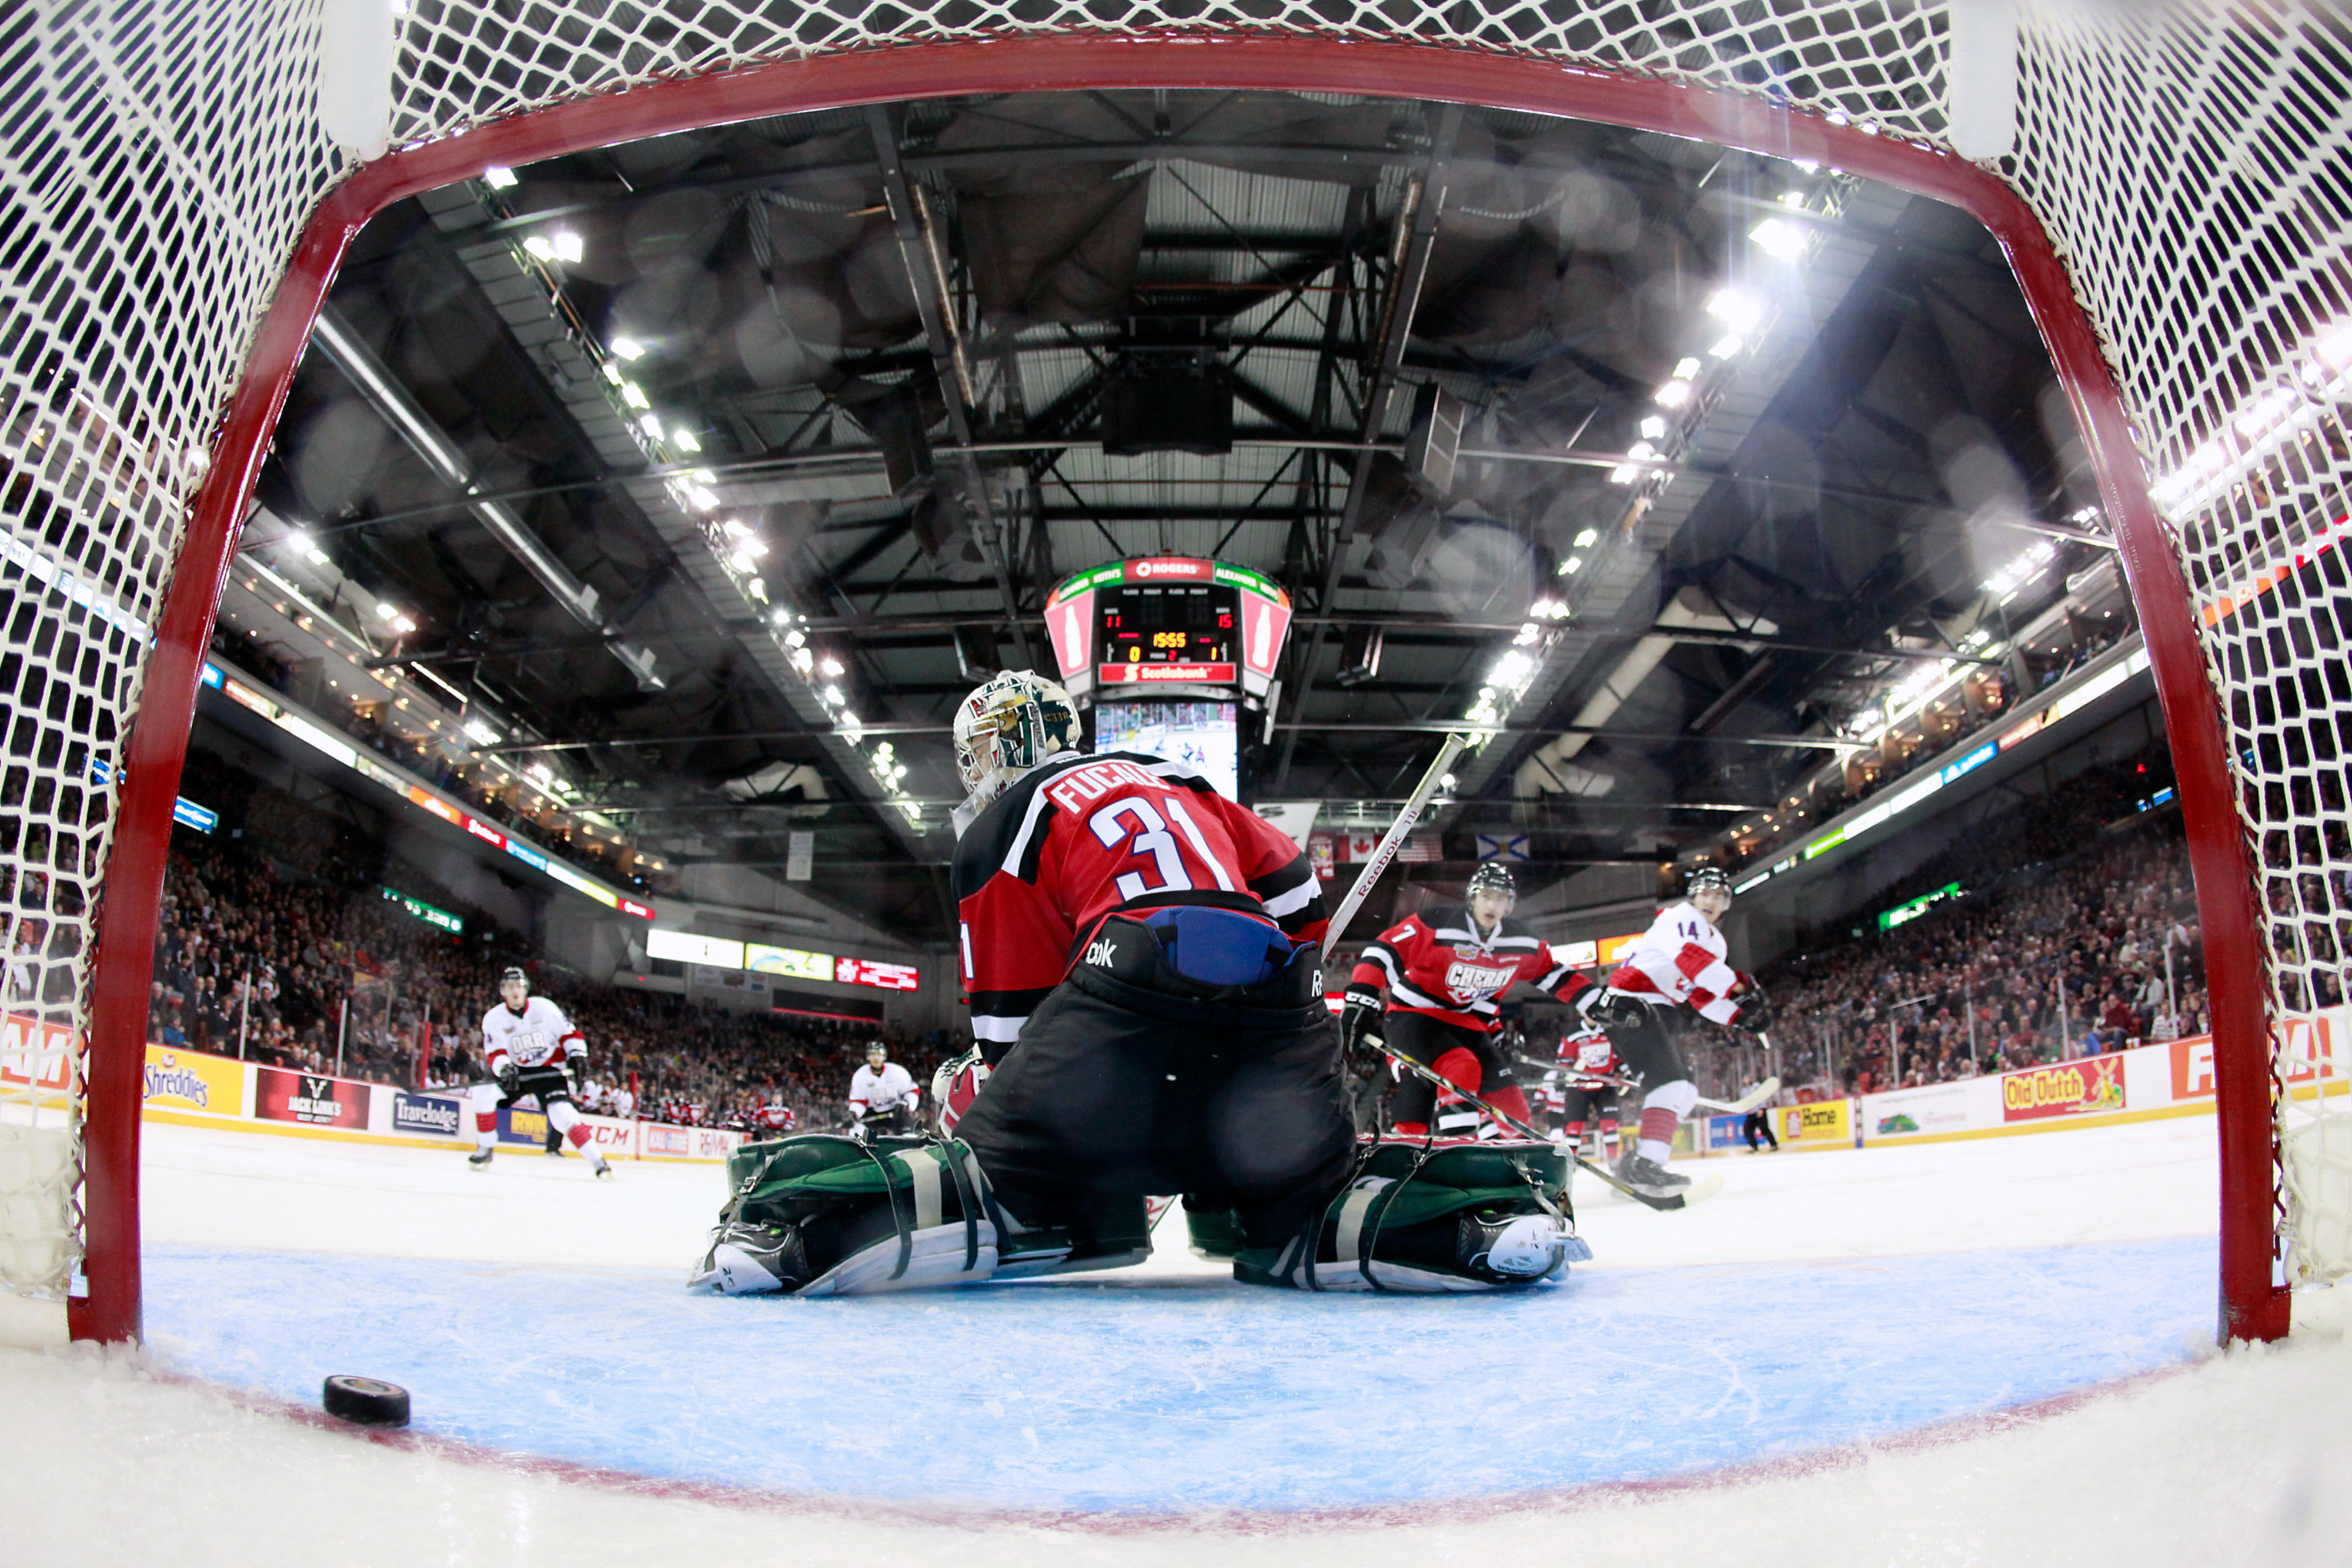 HALIFAX, CANADA - JANUARY 16: Zachary Fucale #31  looks back as the puck crosses the line during the CHL Top Prospects game .